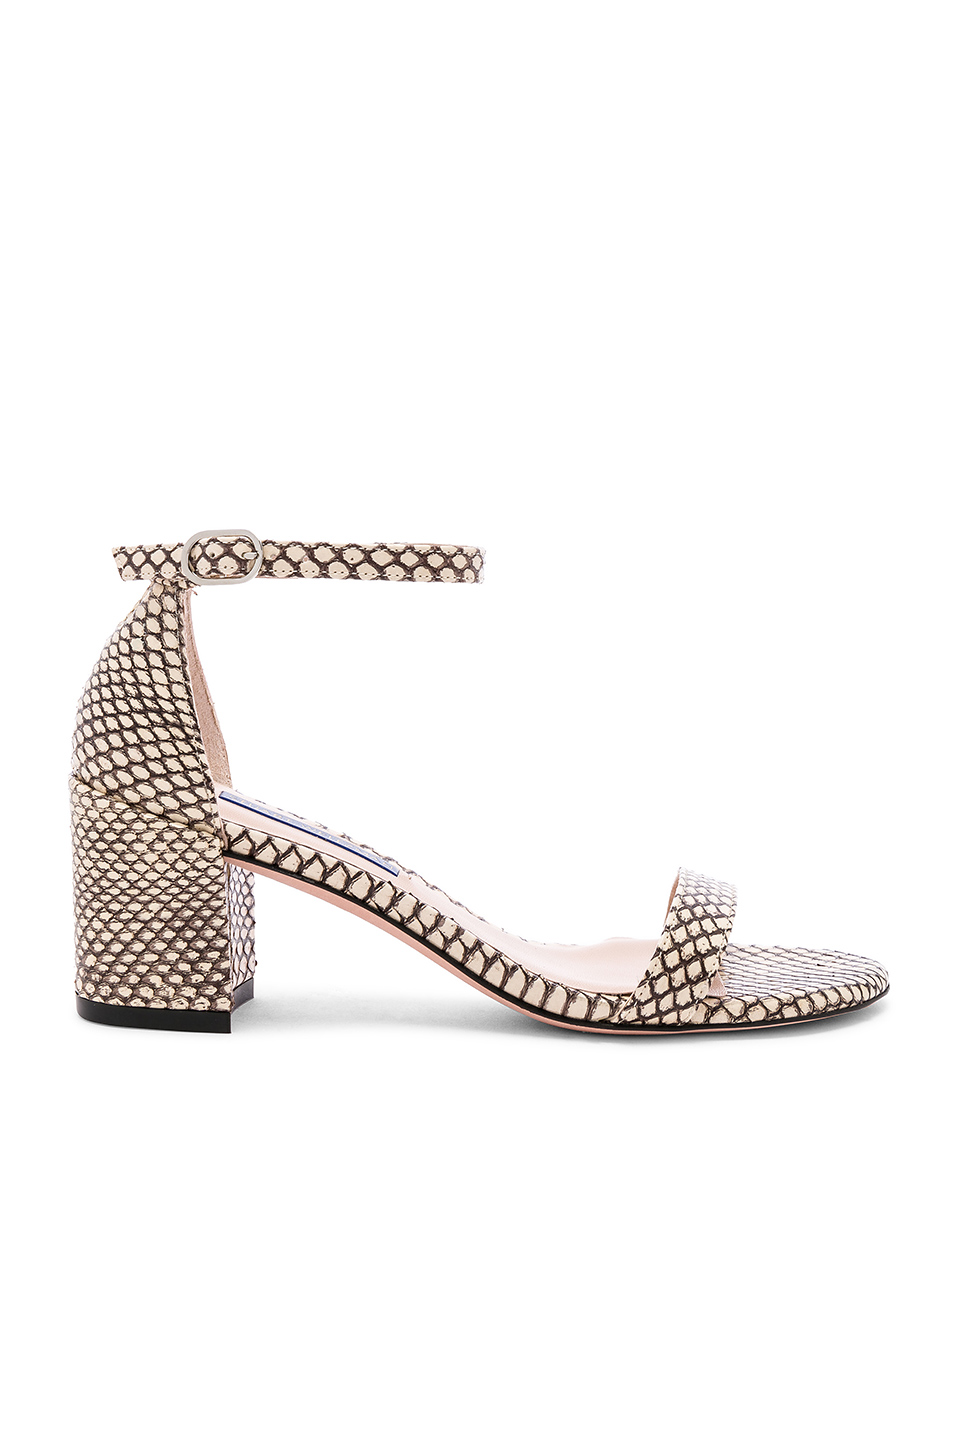 Stuart Weitzman Simple Sandal In Tan. In Bambina Outlined Snake